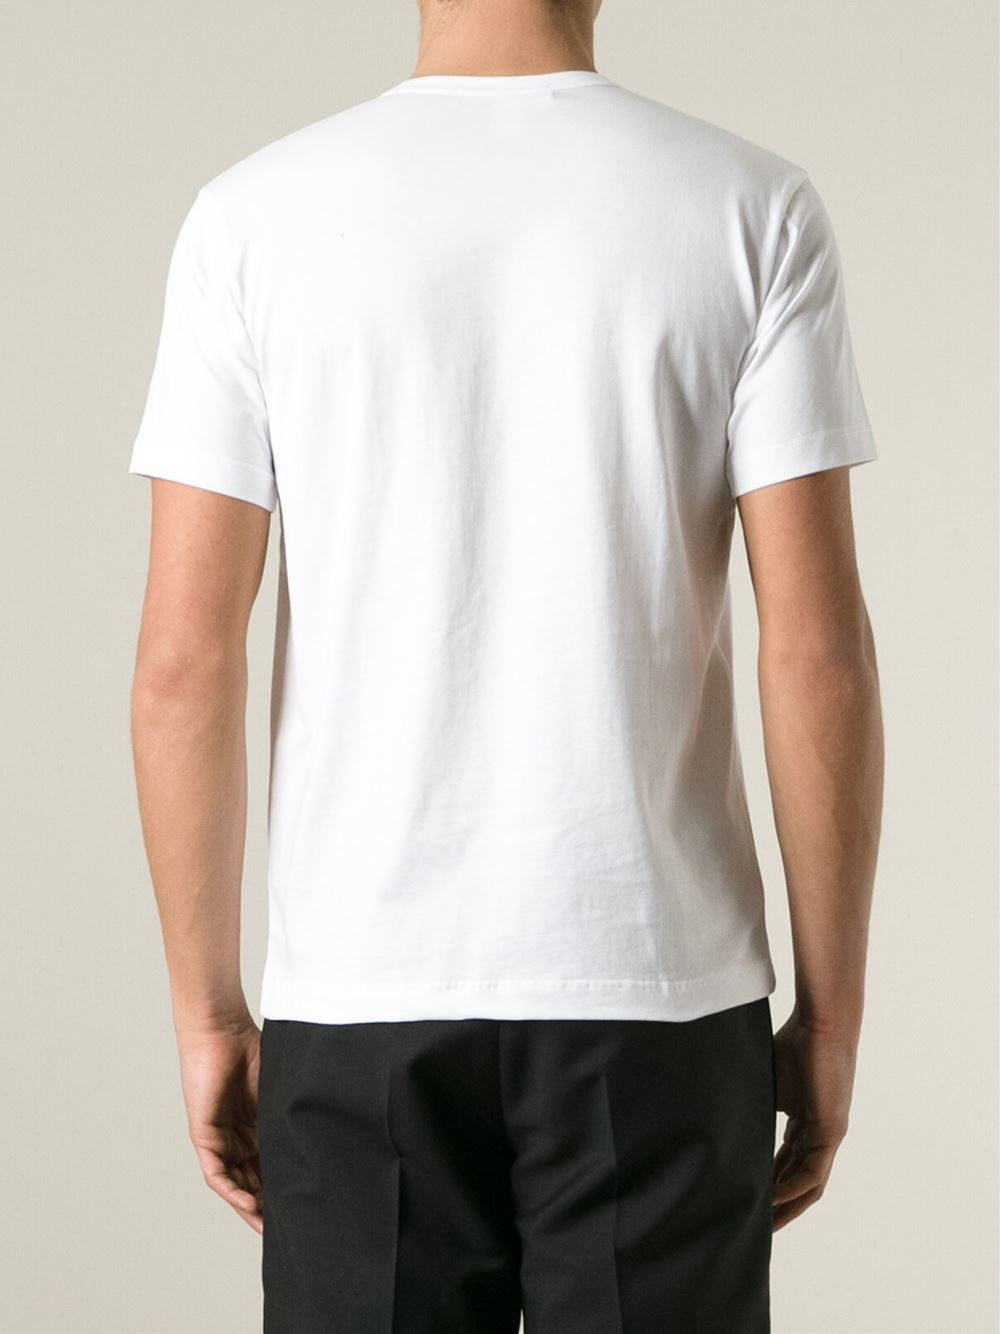 comme des gar ons patch pocket t shirt in white for men lyst. Black Bedroom Furniture Sets. Home Design Ideas